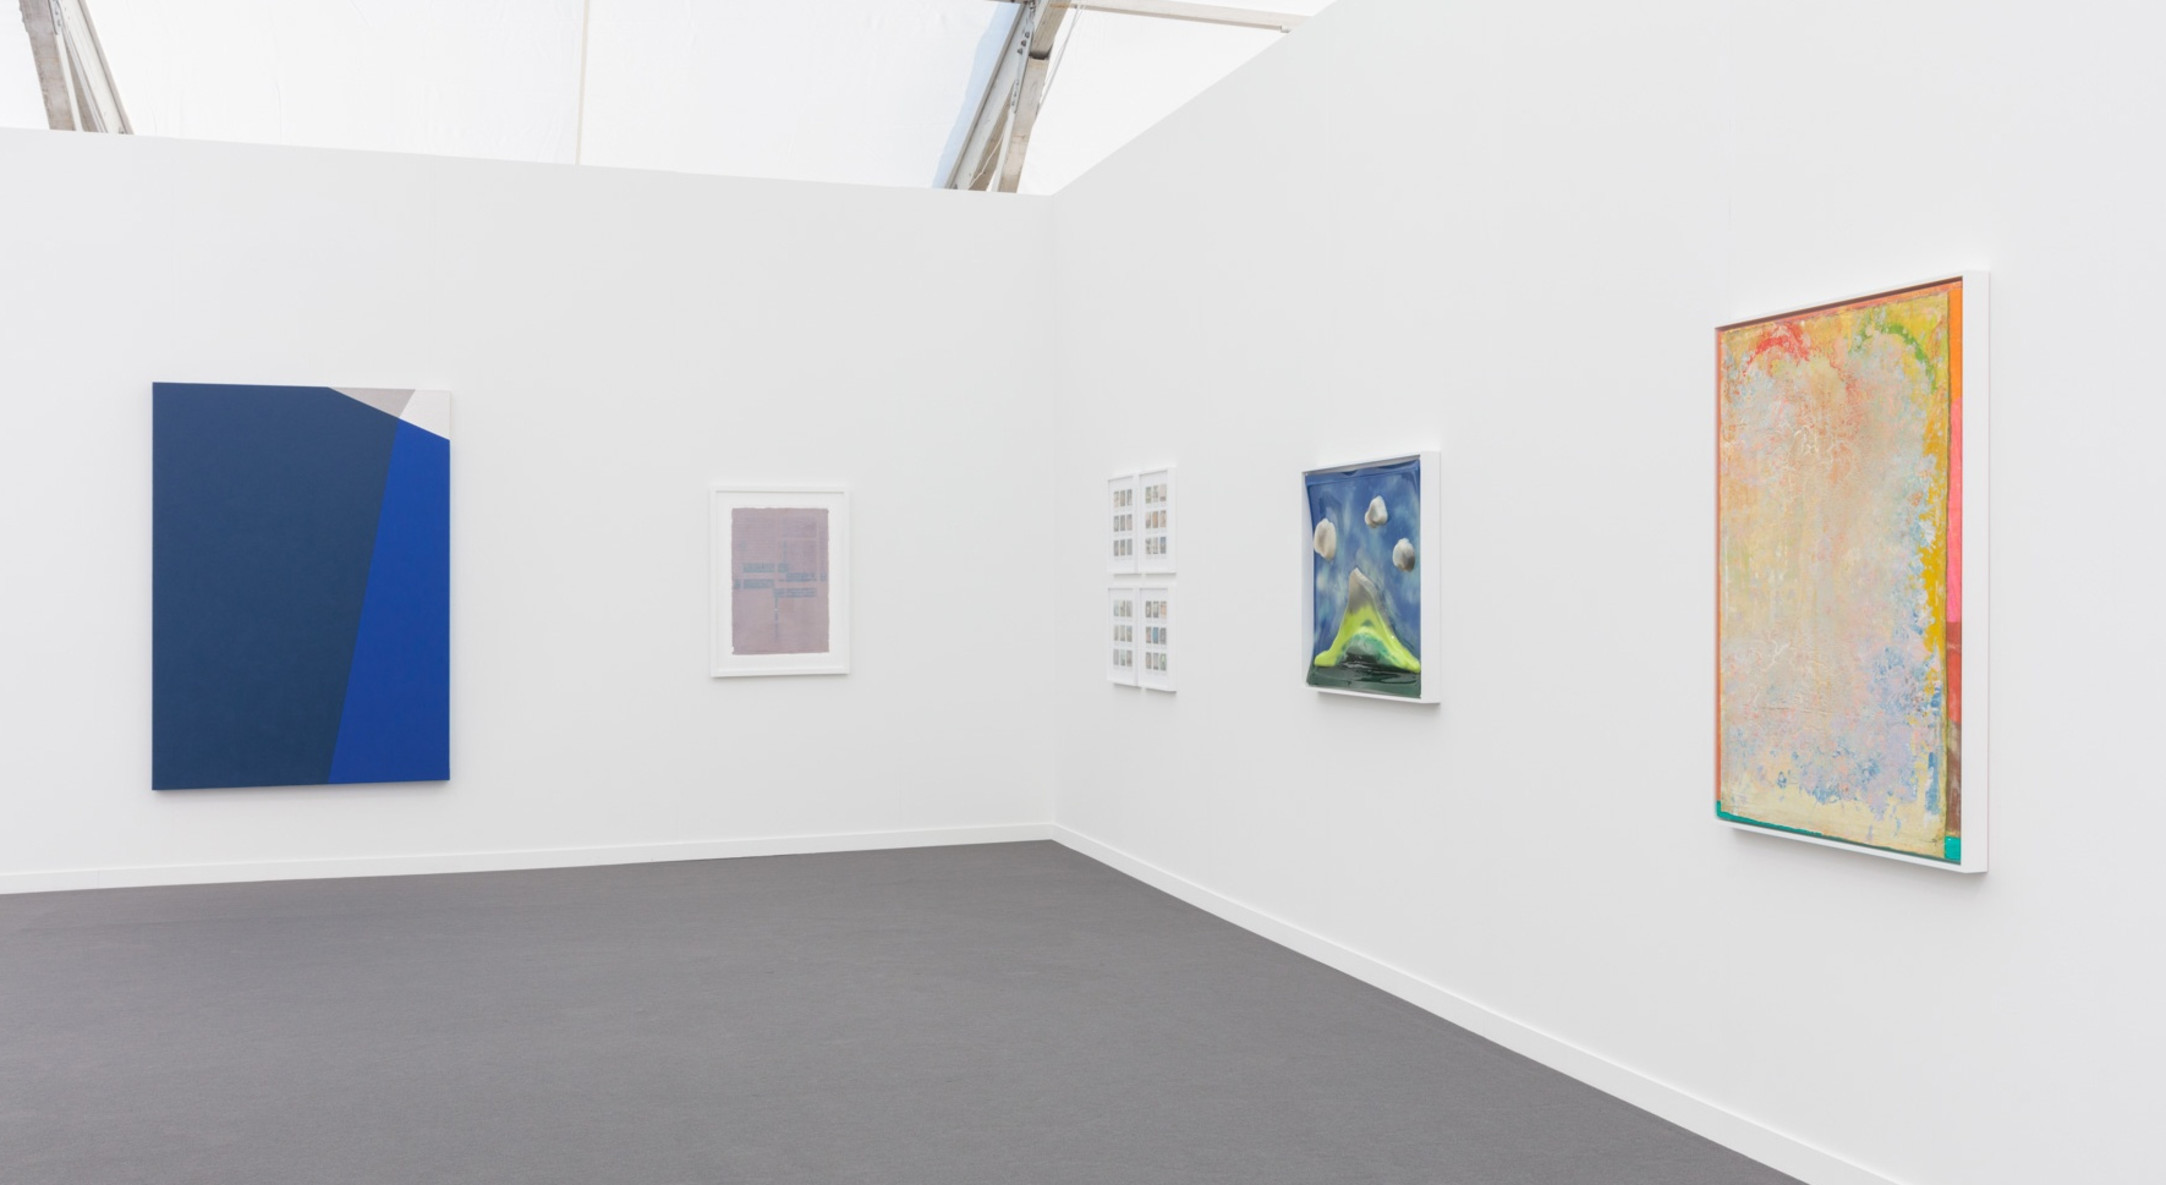 Installation view of Hales Gallery booth at Frieze New York 2019